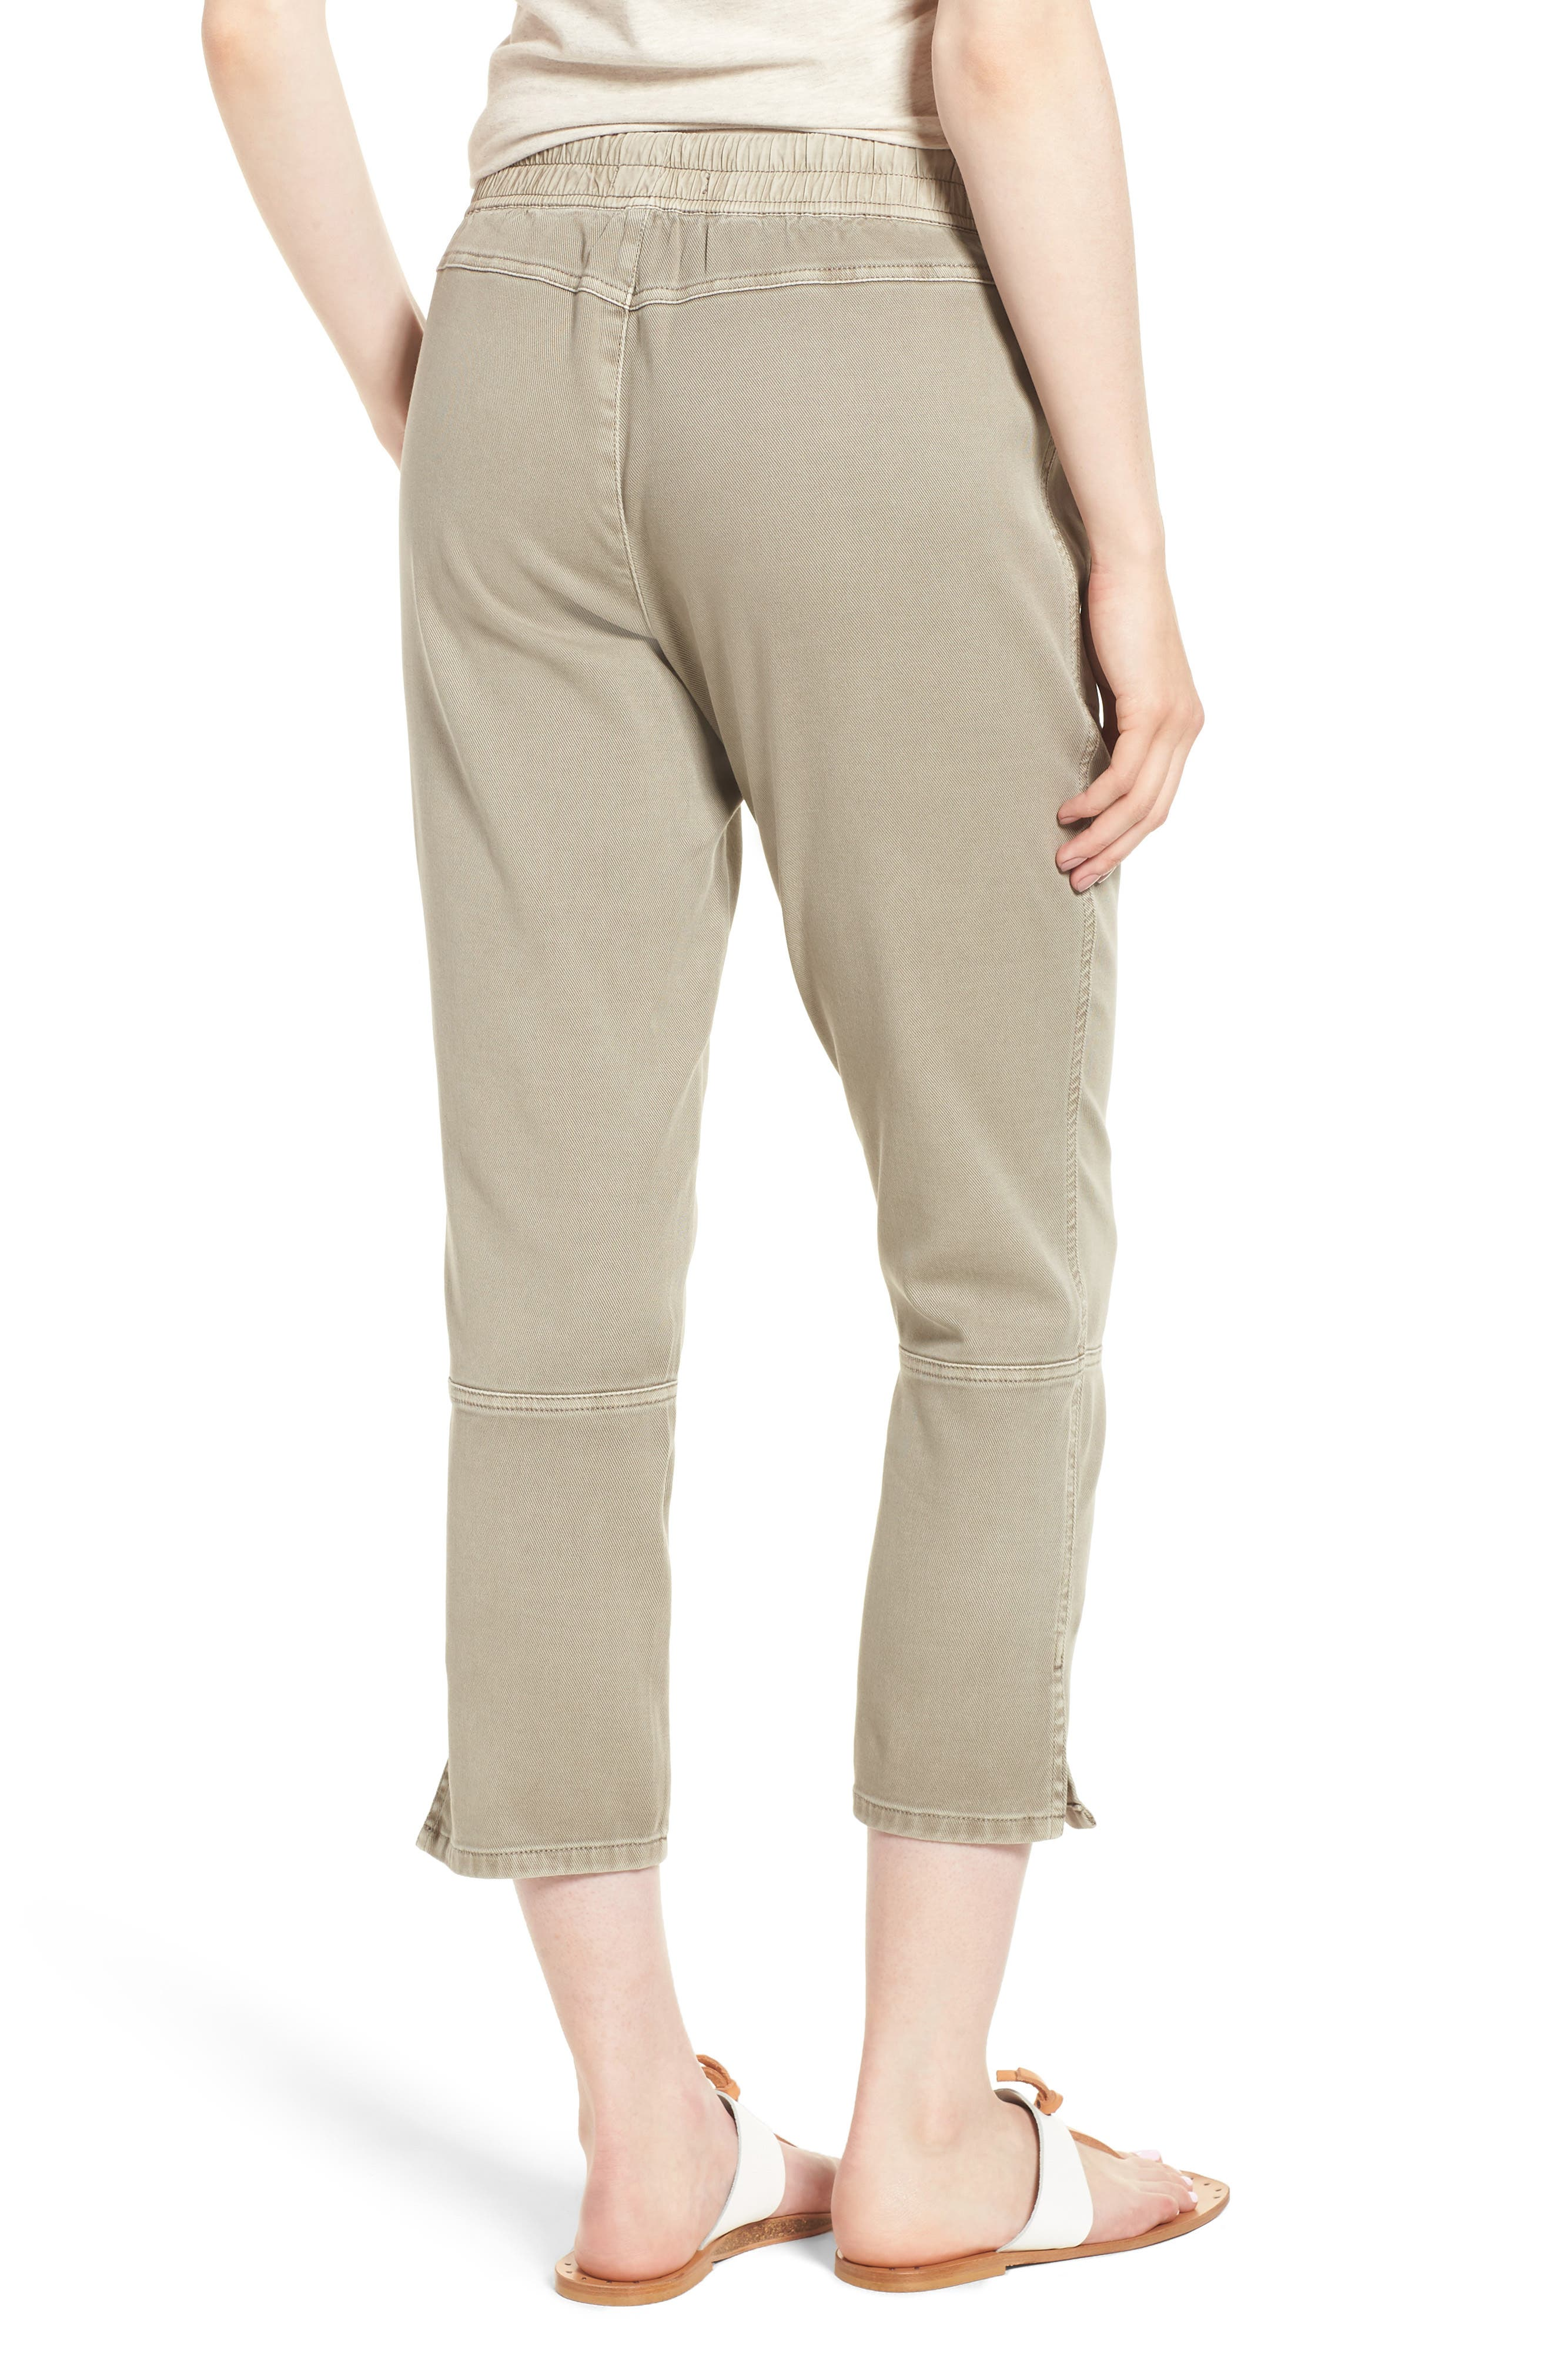 Open Road Ankle Pants,                             Alternate thumbnail 2, color,                             Flax